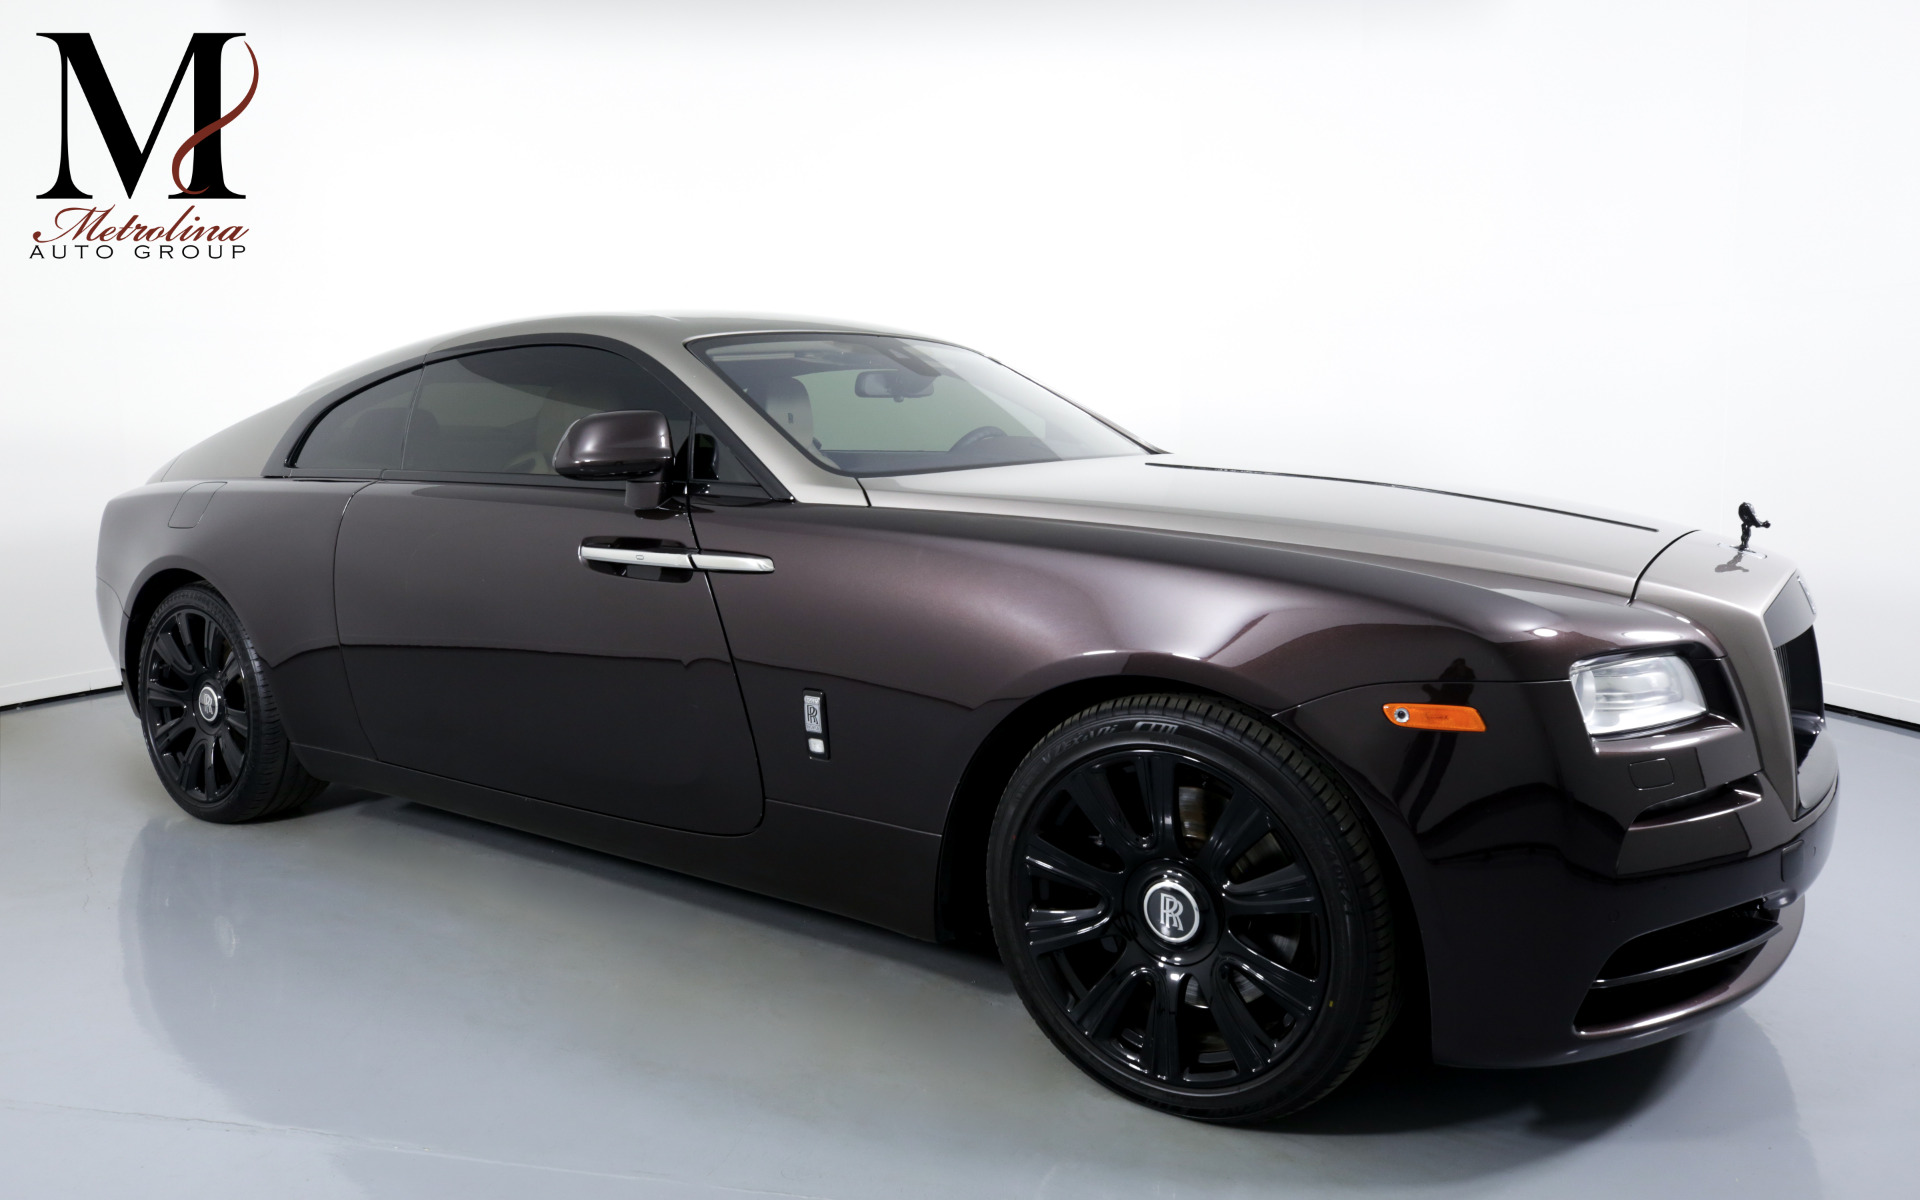 Used 2014 Rolls-Royce Wraith for sale $157,996 at Metrolina Auto Group in Charlotte NC 28217 - 1